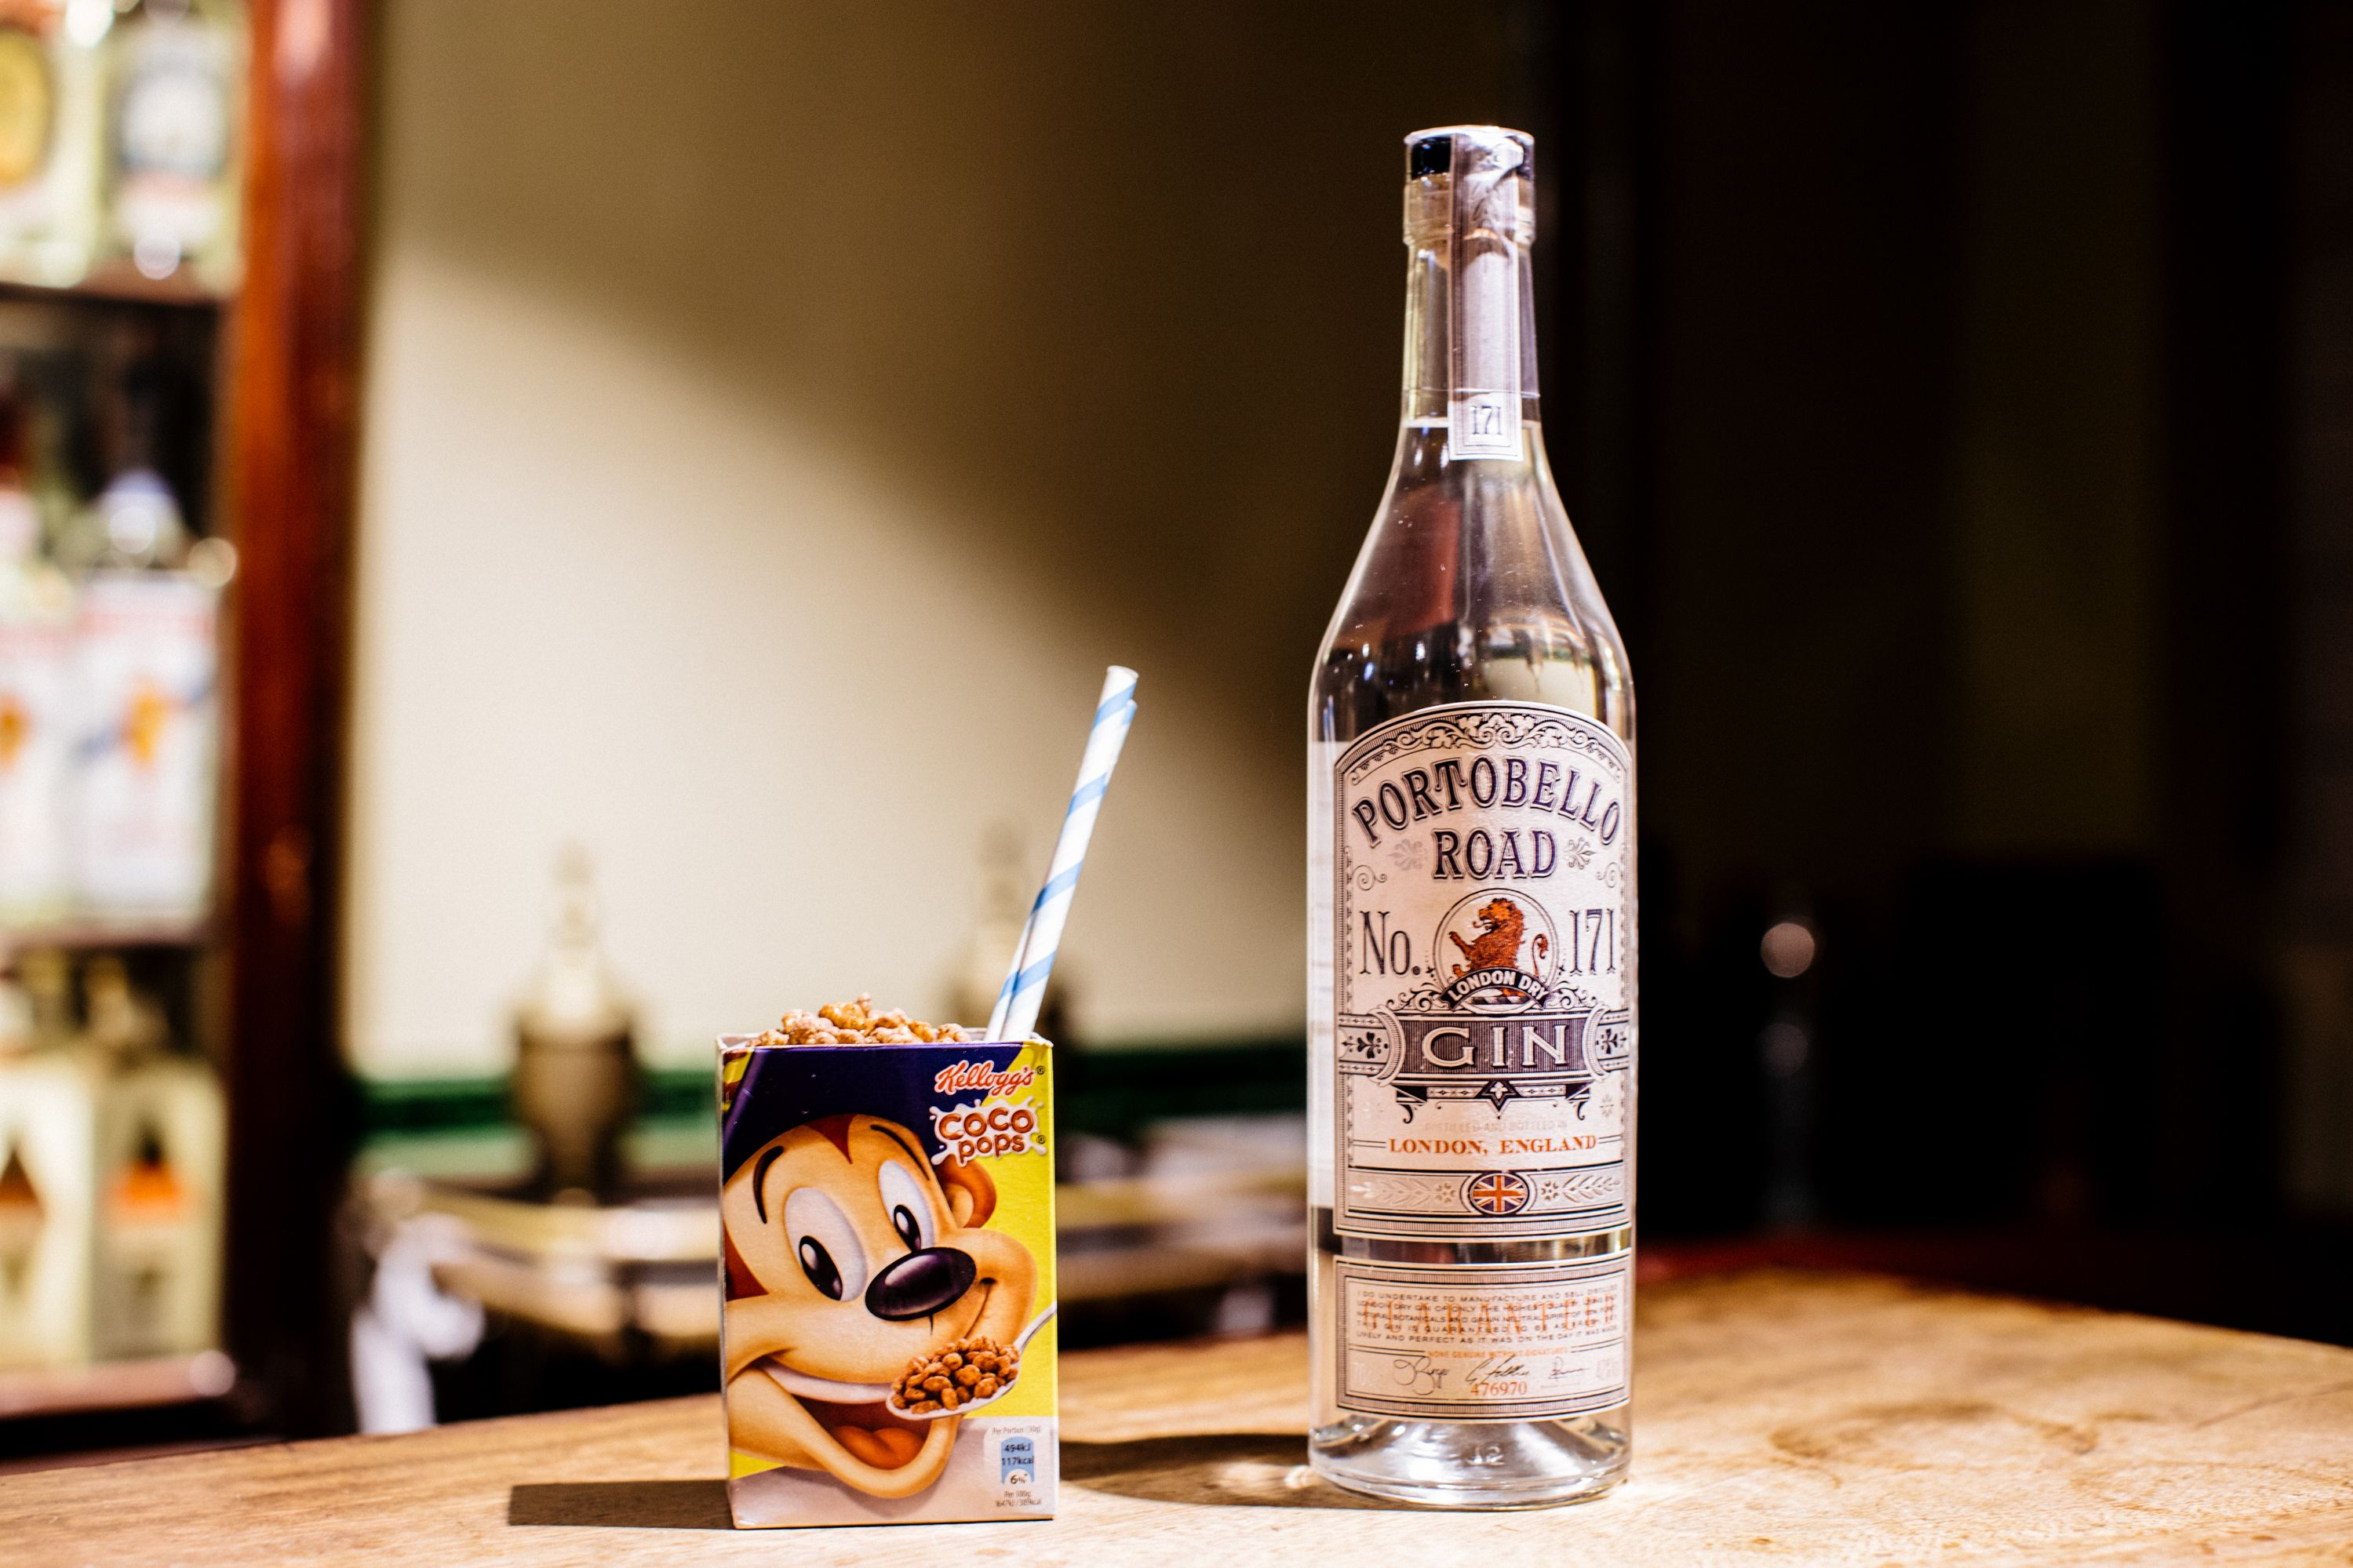 distillery-coco-pops-gin-cocktail-london